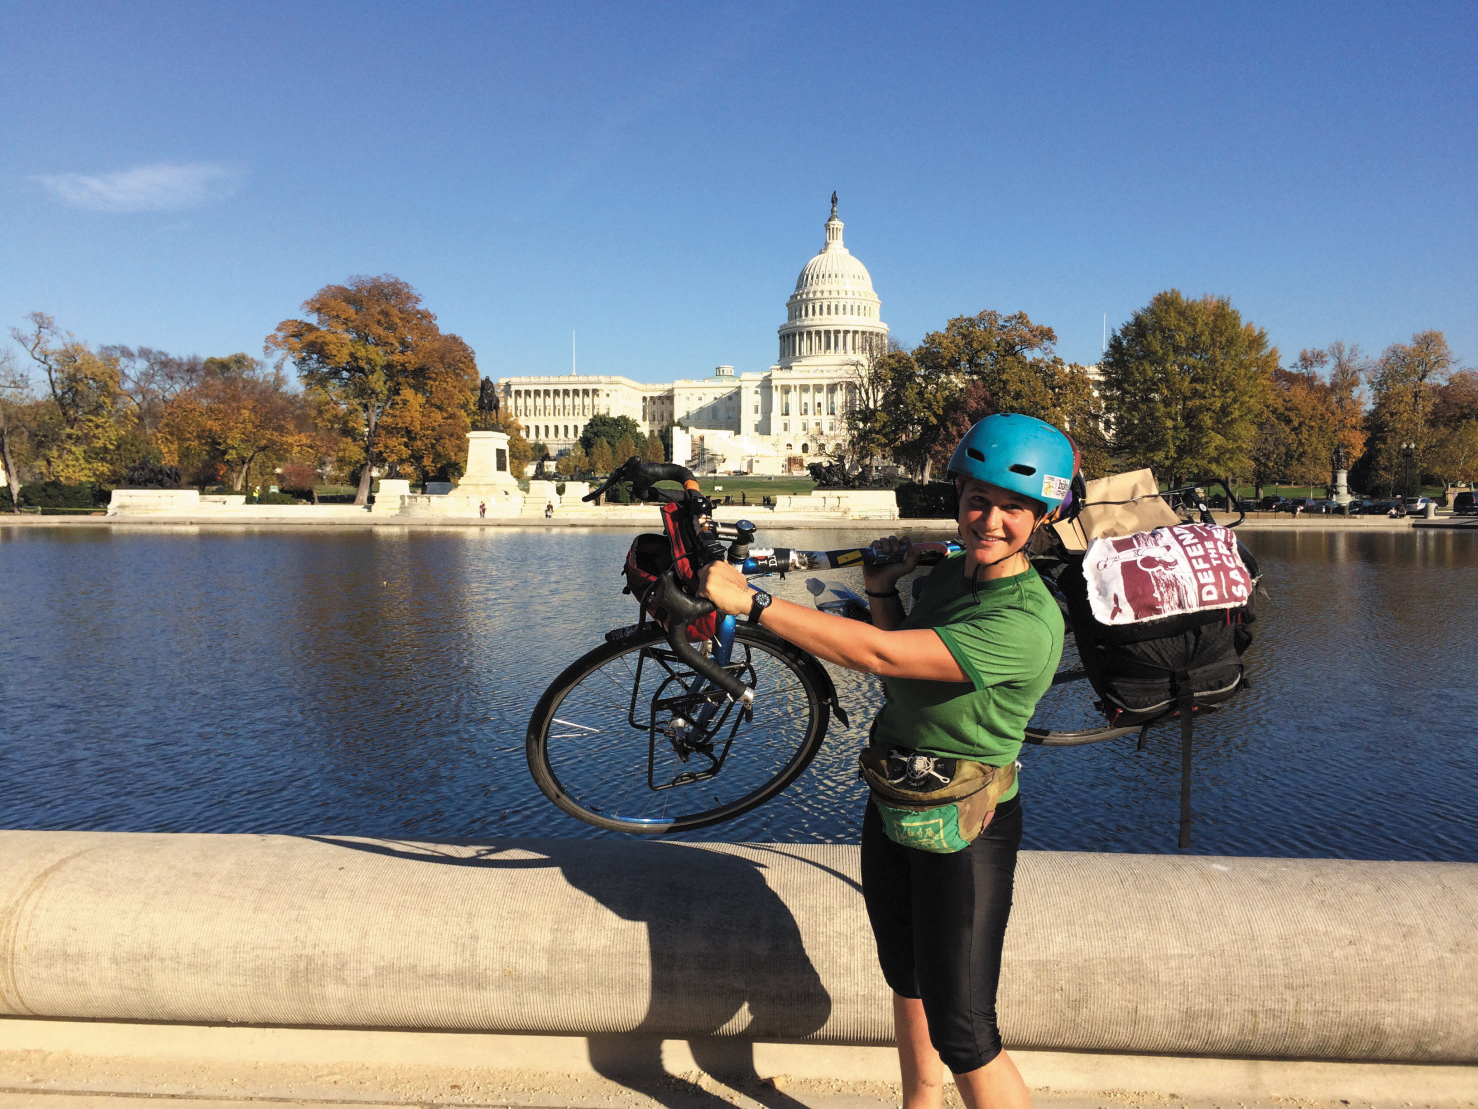 Erika Longino has created synergy in her transcontinental bicycle tour with sustainability and social activism, mycology and food education. Photo courtesy of Erika Longino